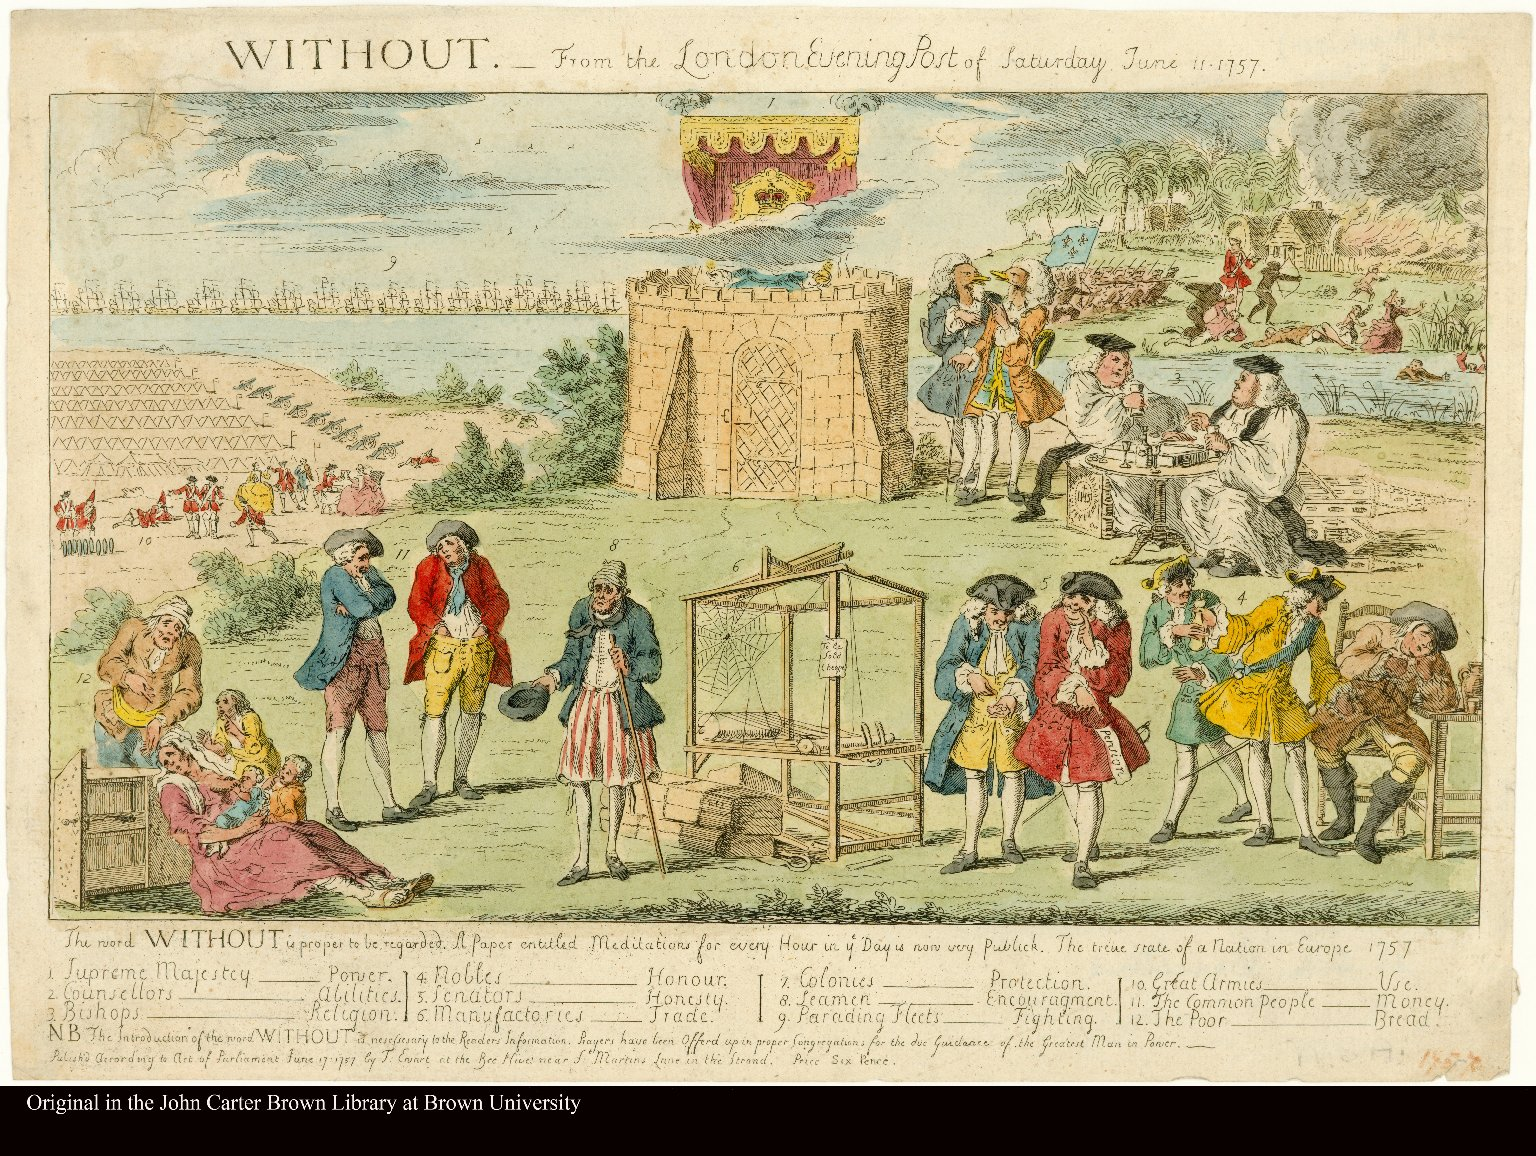 WITHOUT. From the London Evening Post of Saturday June 11, 1757.